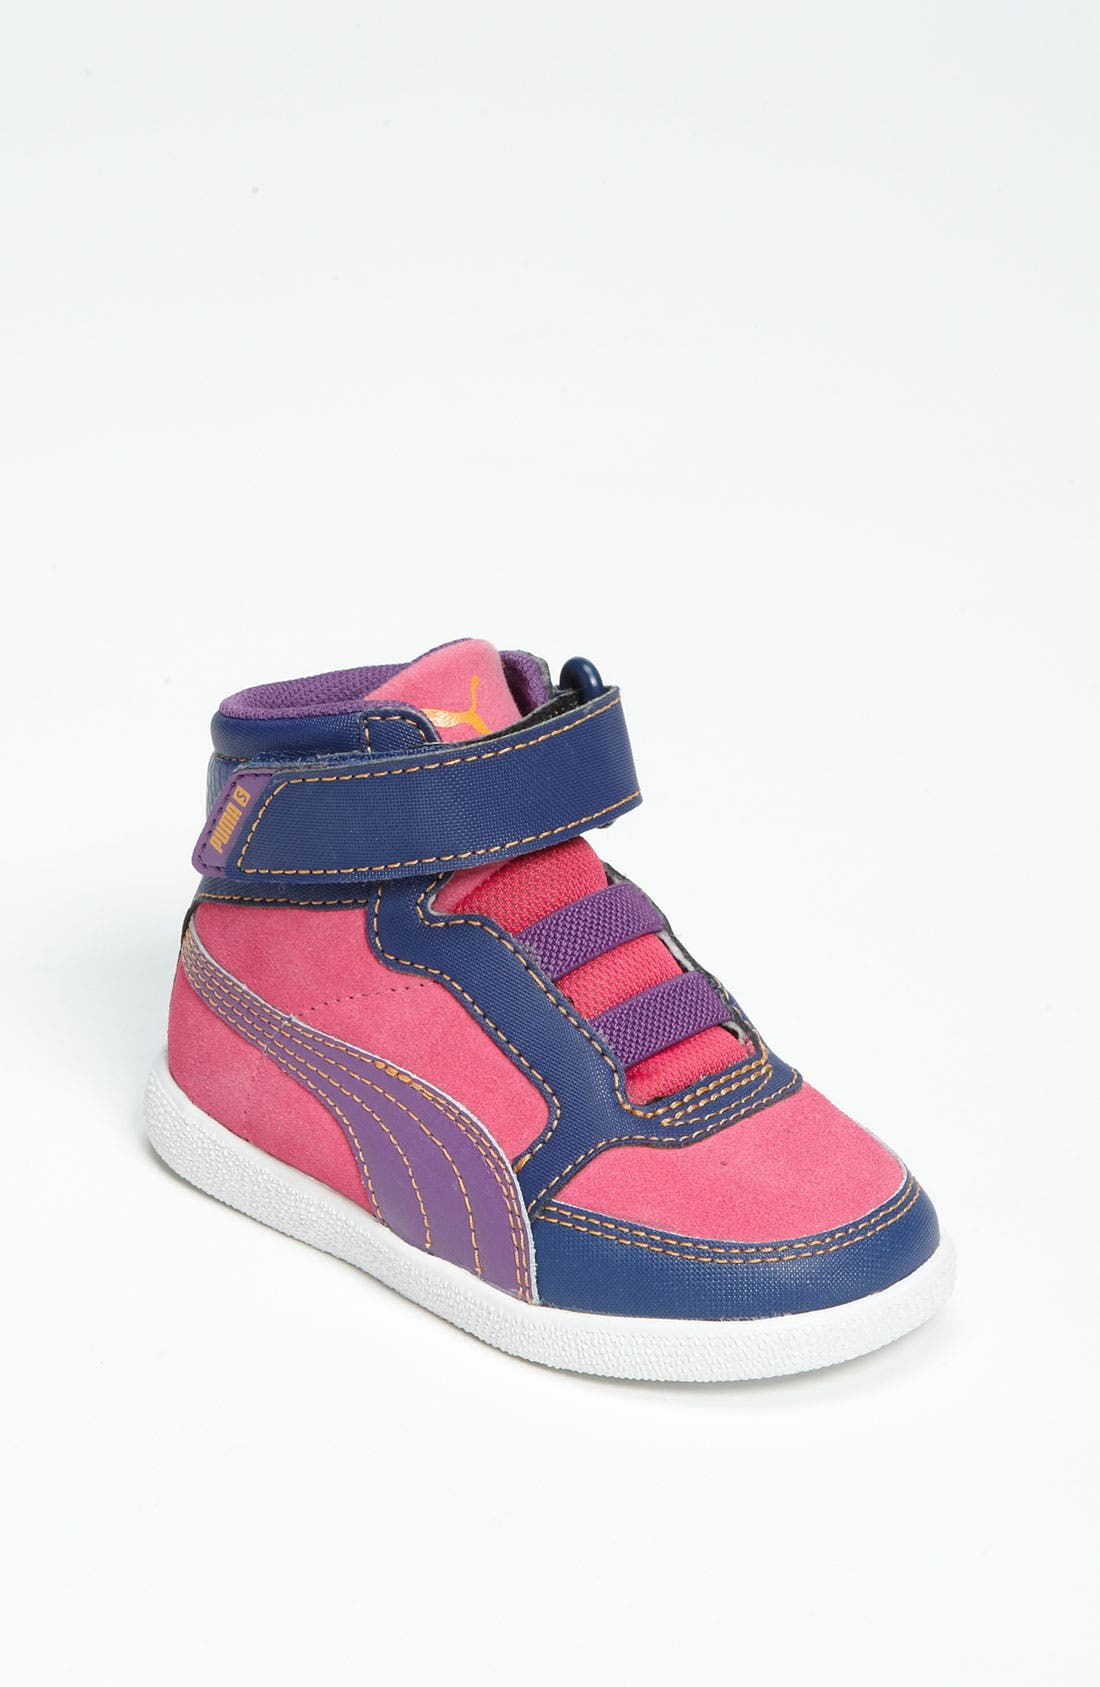 Main Image - PUMA 'Skylaa' Sneaker (Toddler, Little Kid & Big Kid)